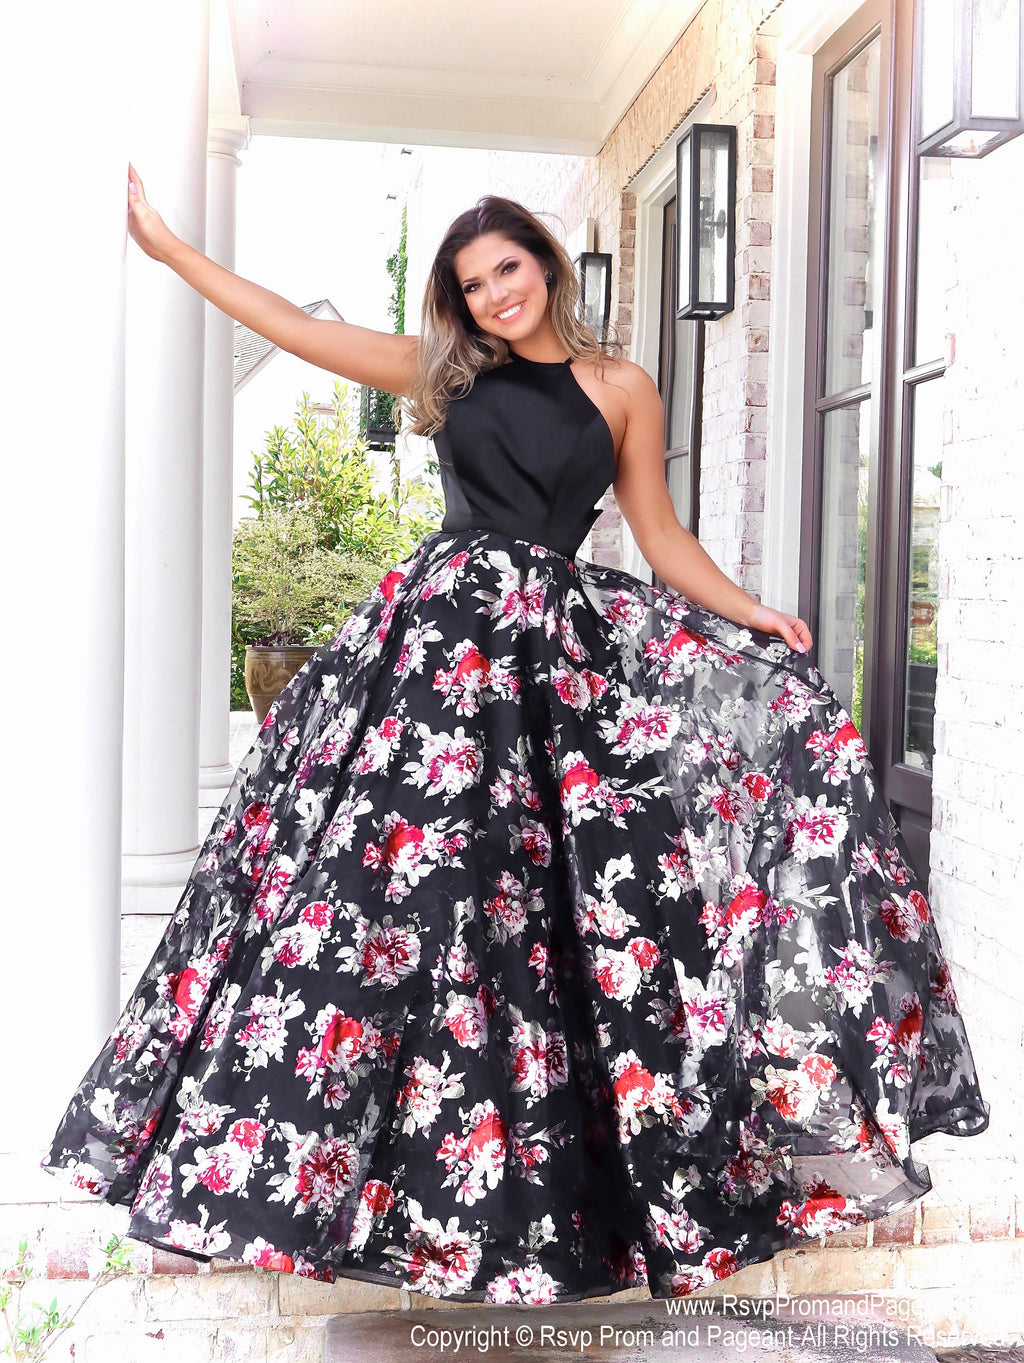 Model in in this glamorous gown with its full flowing floral skirt and which no doubt will make heads turn in this dress! And it's at Rsvp Prom and Pageant, your source for the HOTTEST Prom and Pageant Dresses and exclusive evening gowns and located in Atlanta, Georgia!